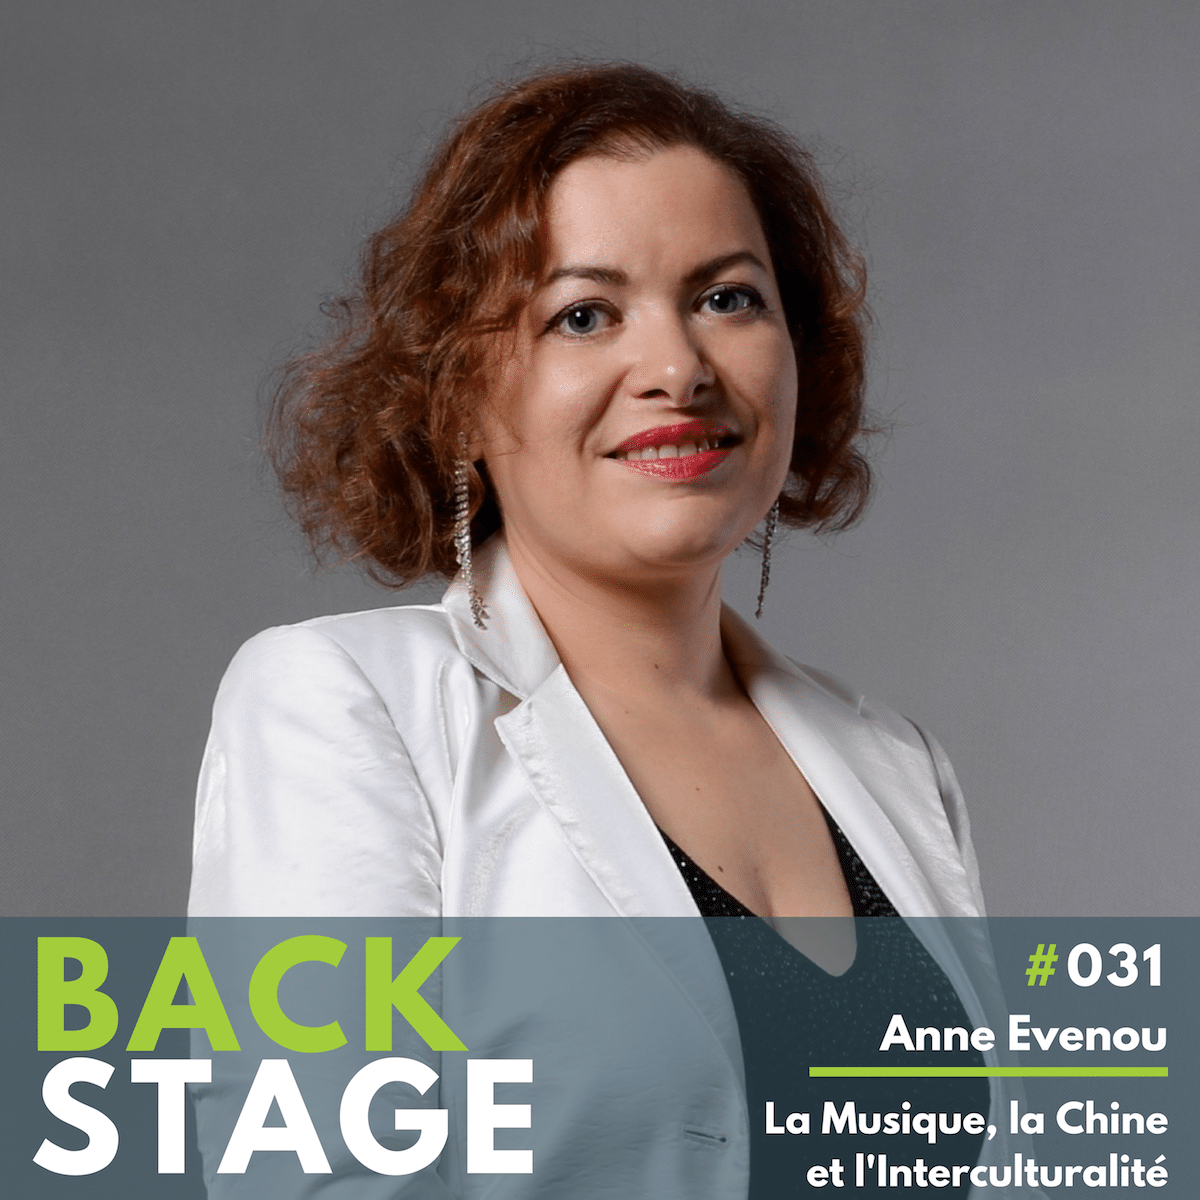 BACKSTAGE #031 - Anne Evenou, la Musique, la Chine, et l'Interculturalité - Podcast